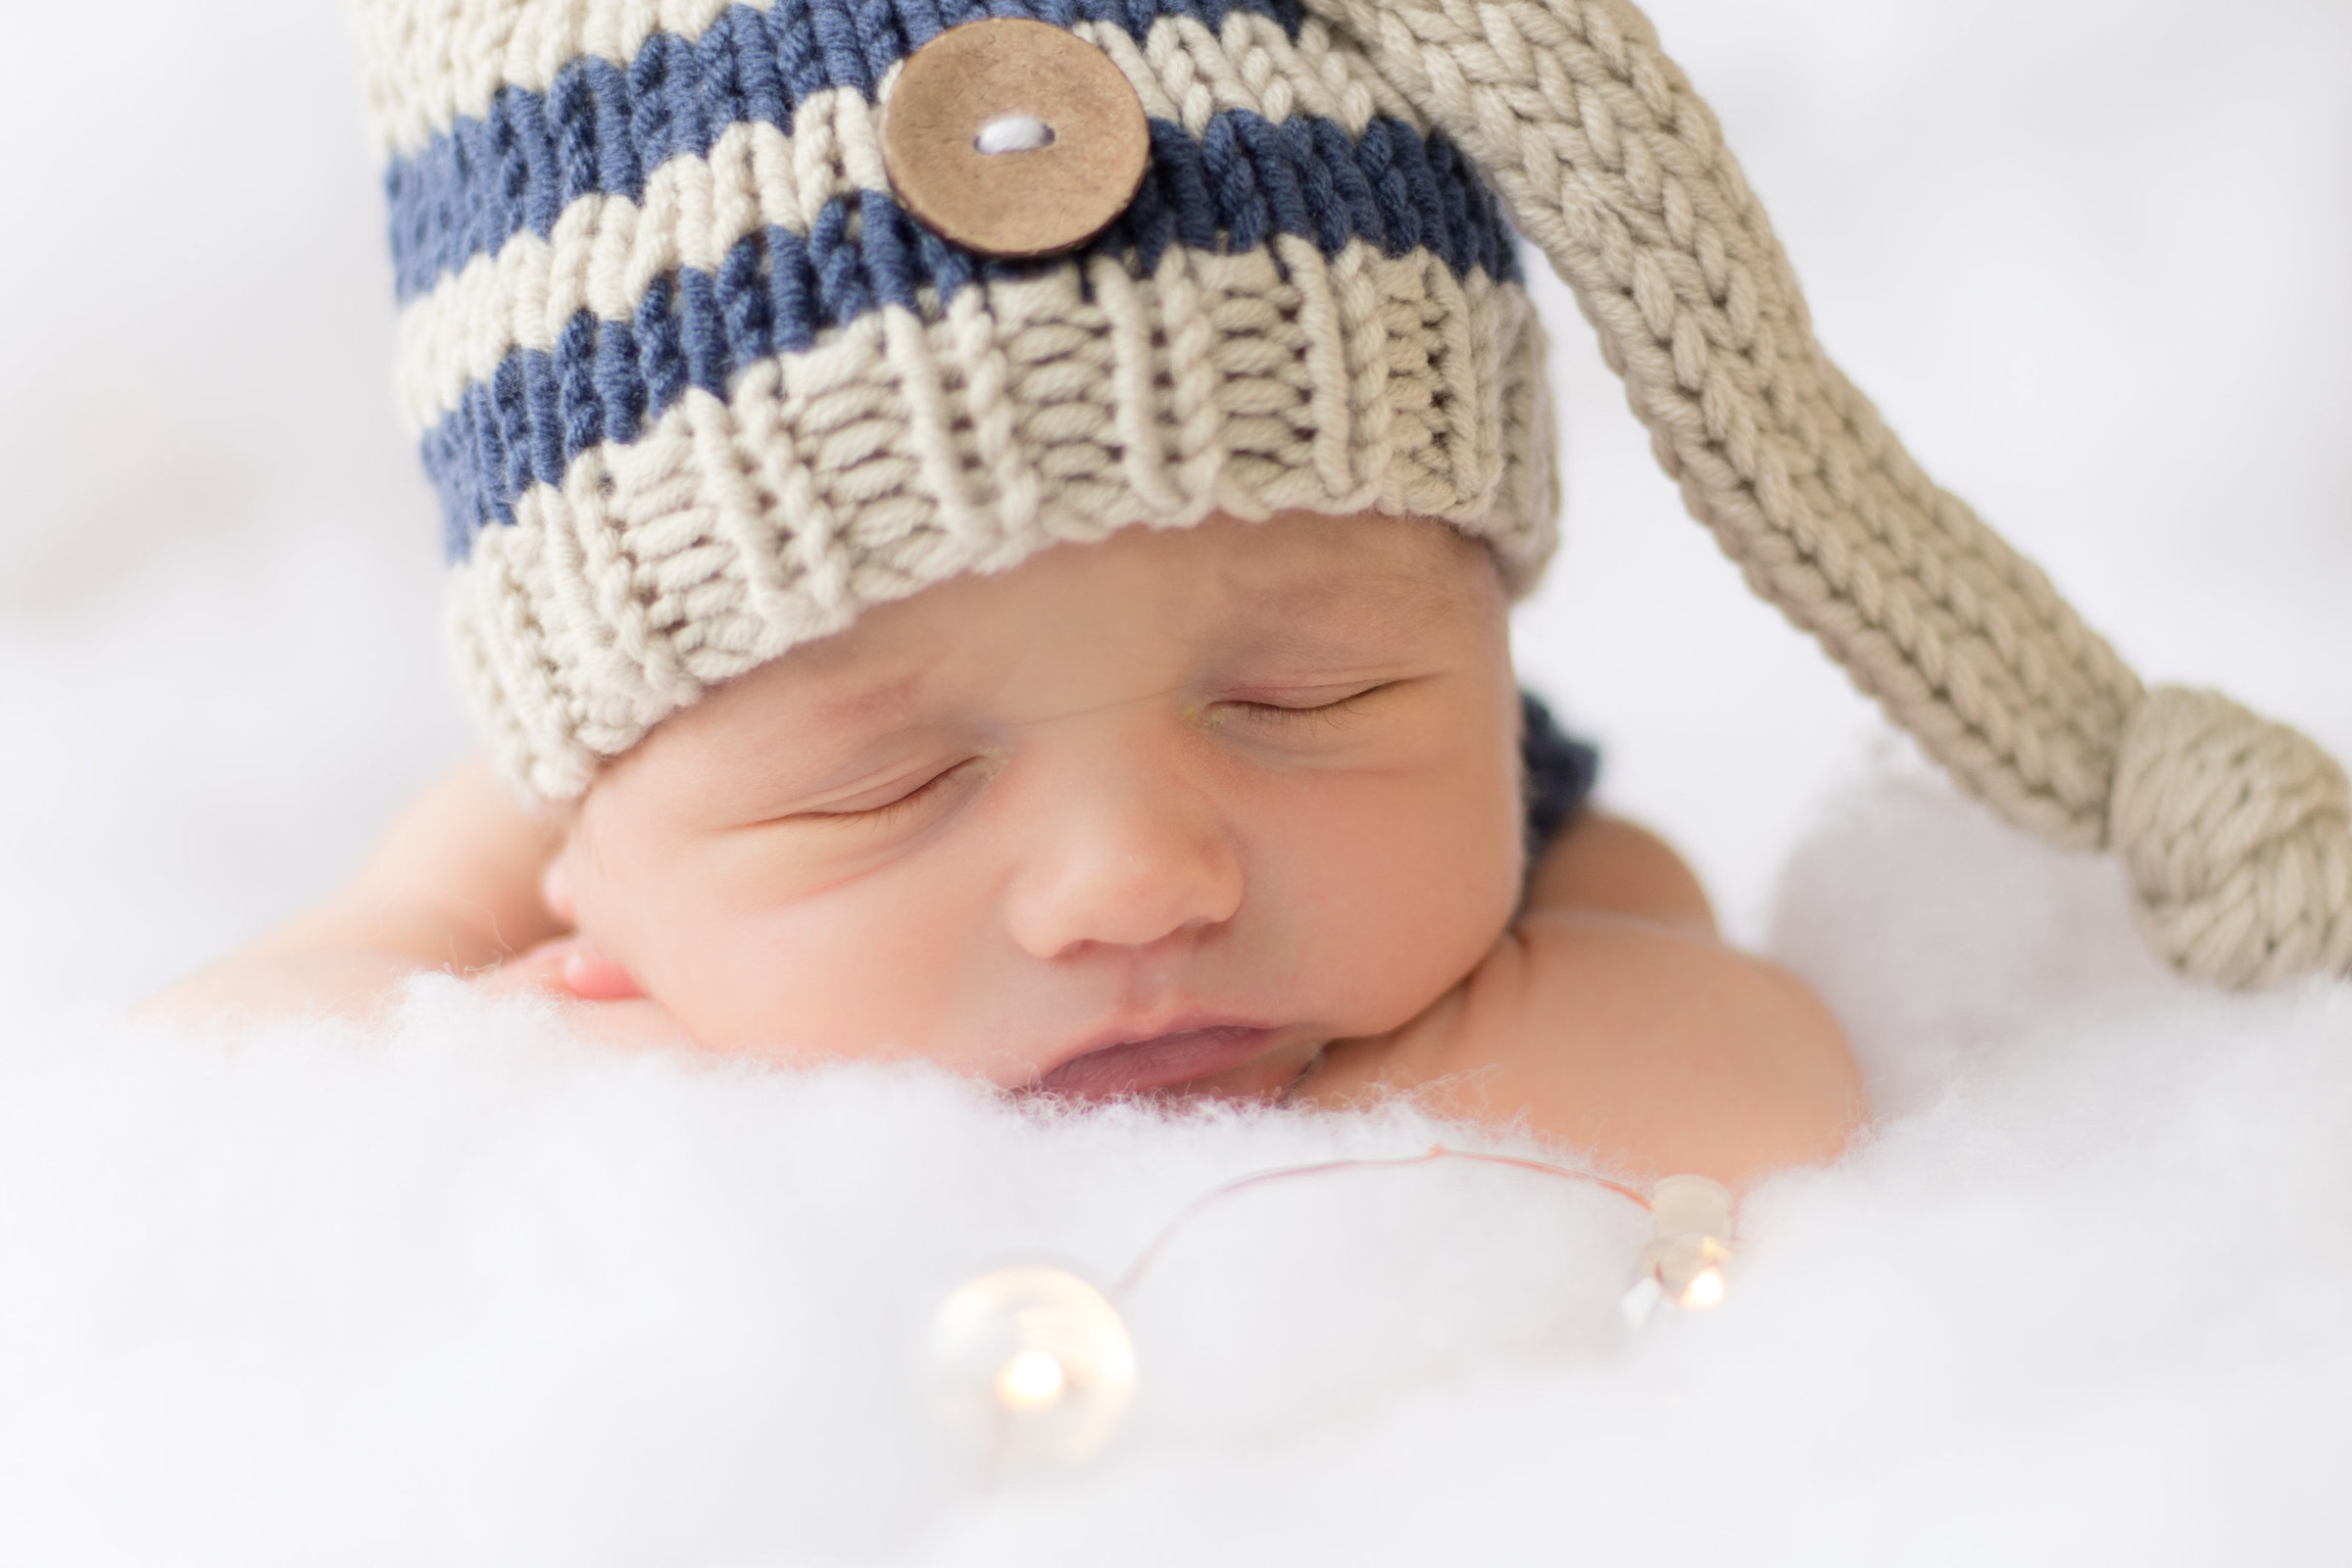 Newborn Baby Boy Wearing blue and tan striped sleep cap